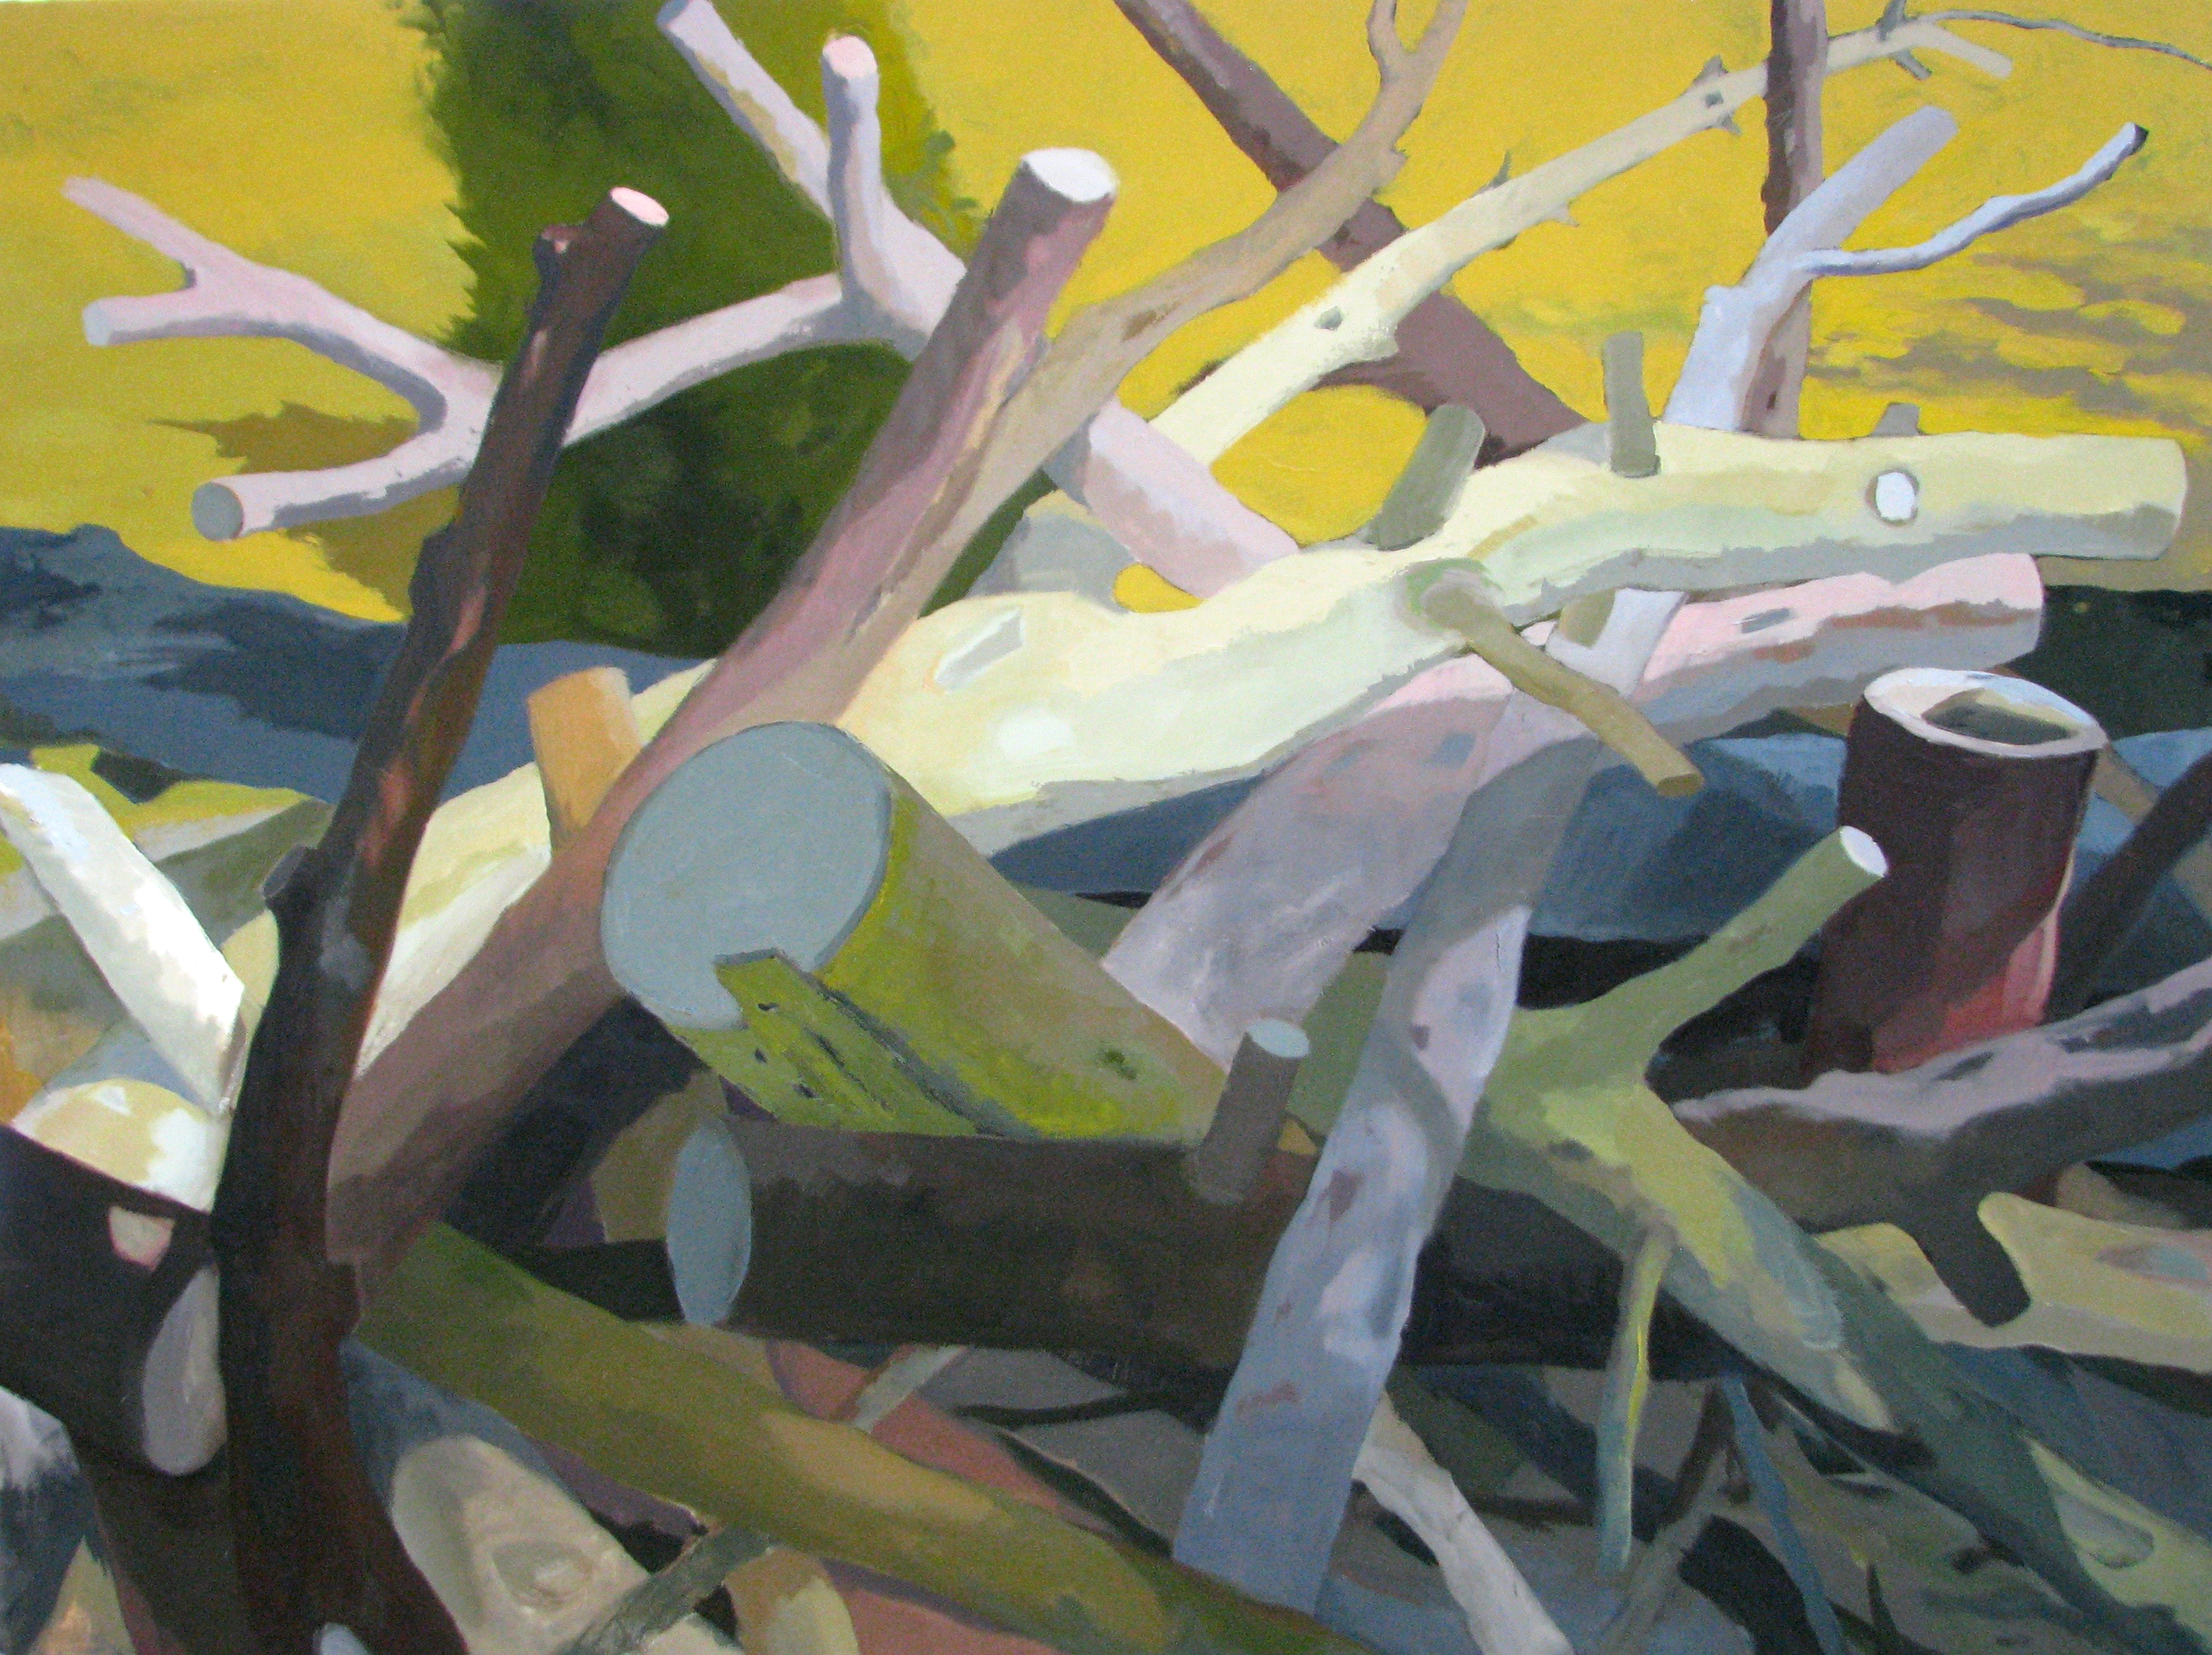 Jean Koeller | WOODPILE REACHING | oil on canvas | 36 x 48"